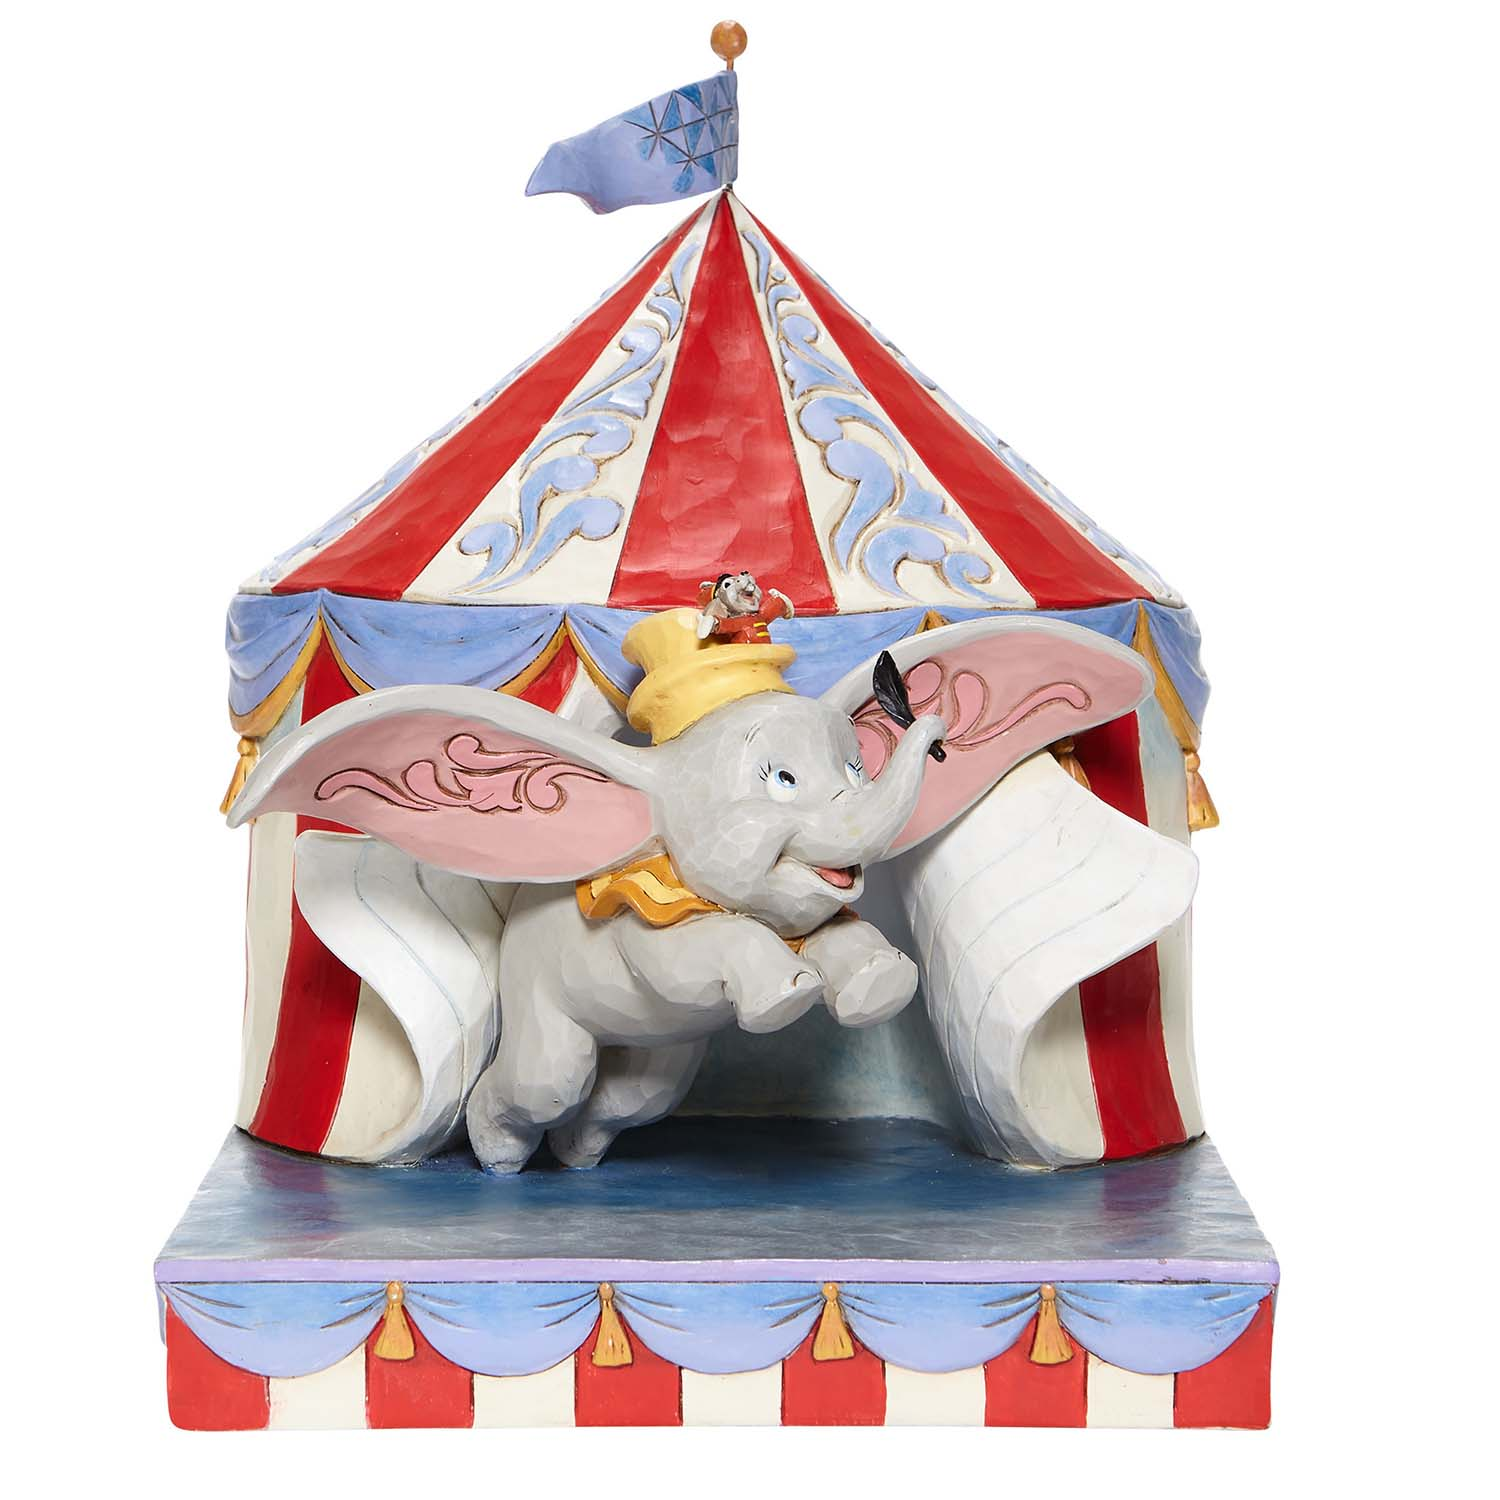 Disney Traditions by Jim Shore - Dumbo Flying Out of Tent Scene